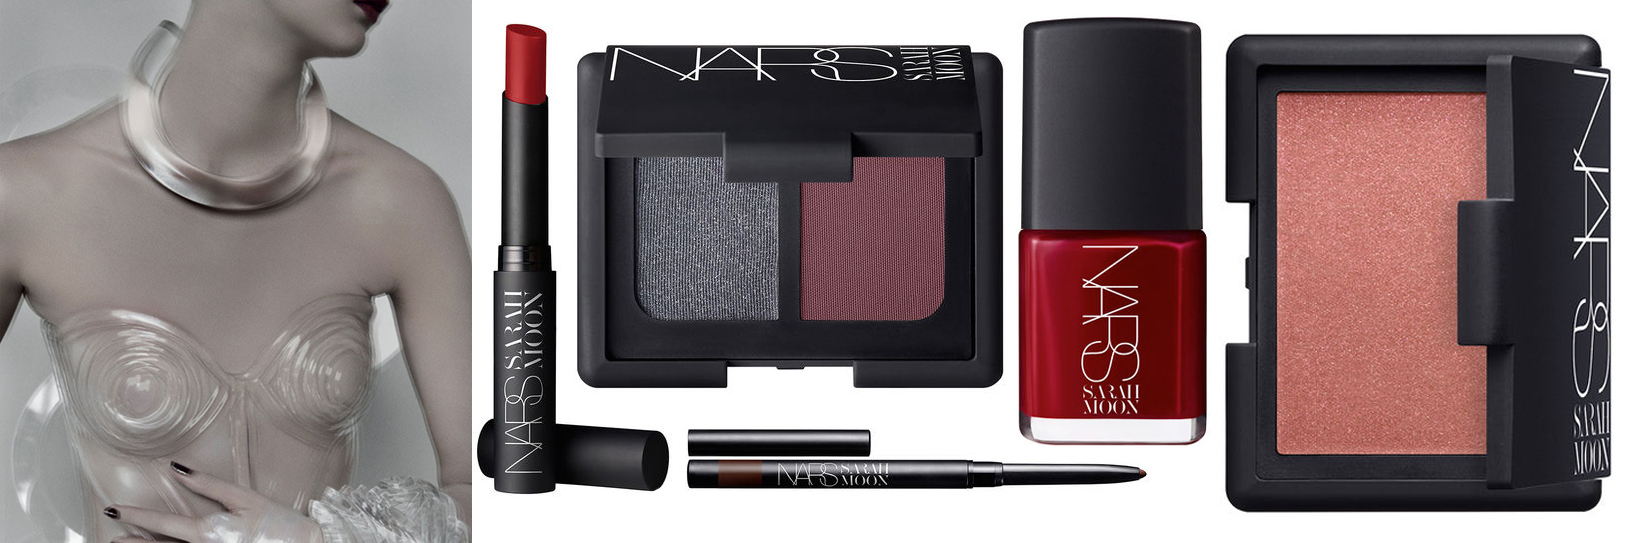 nars-sarah-moon-makeup-collection-christmas-2016-my-picks